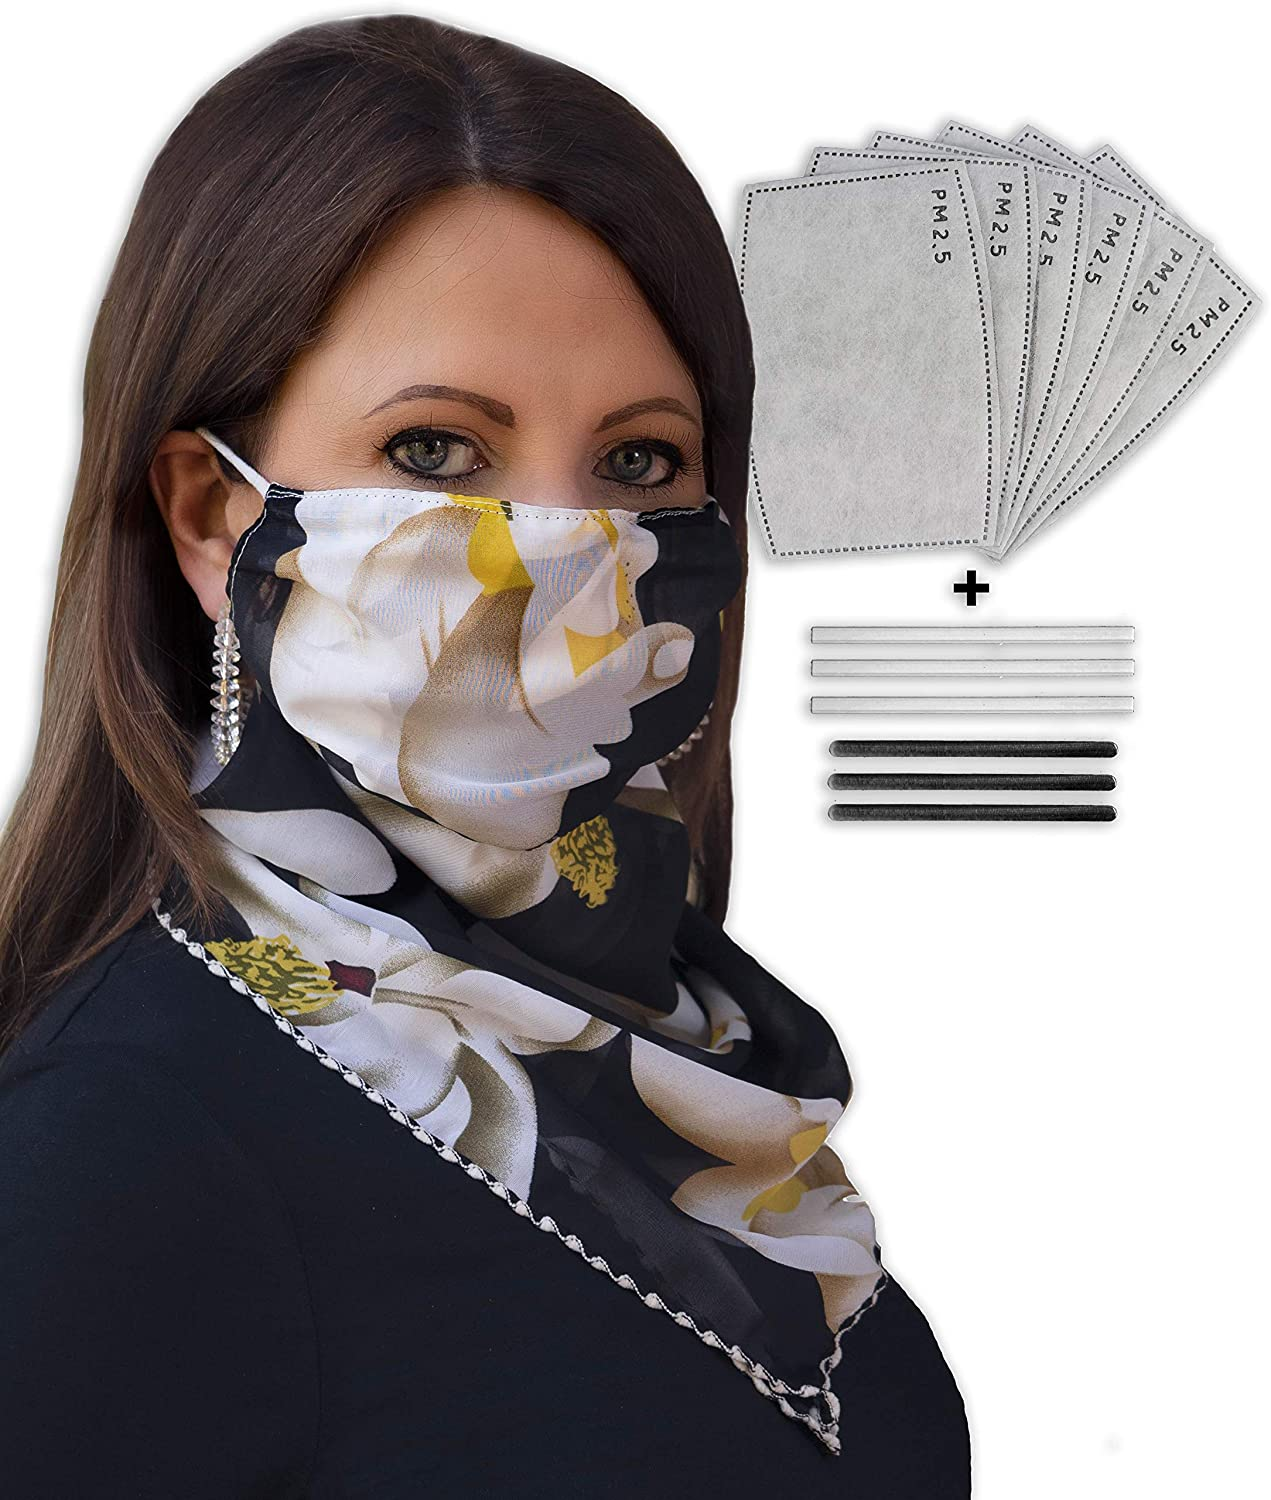 TOLDUSO Reusable Scarf Mask Neck Gaiter-Face Covering with 6 Filters and 6 Nose Bridge Strips